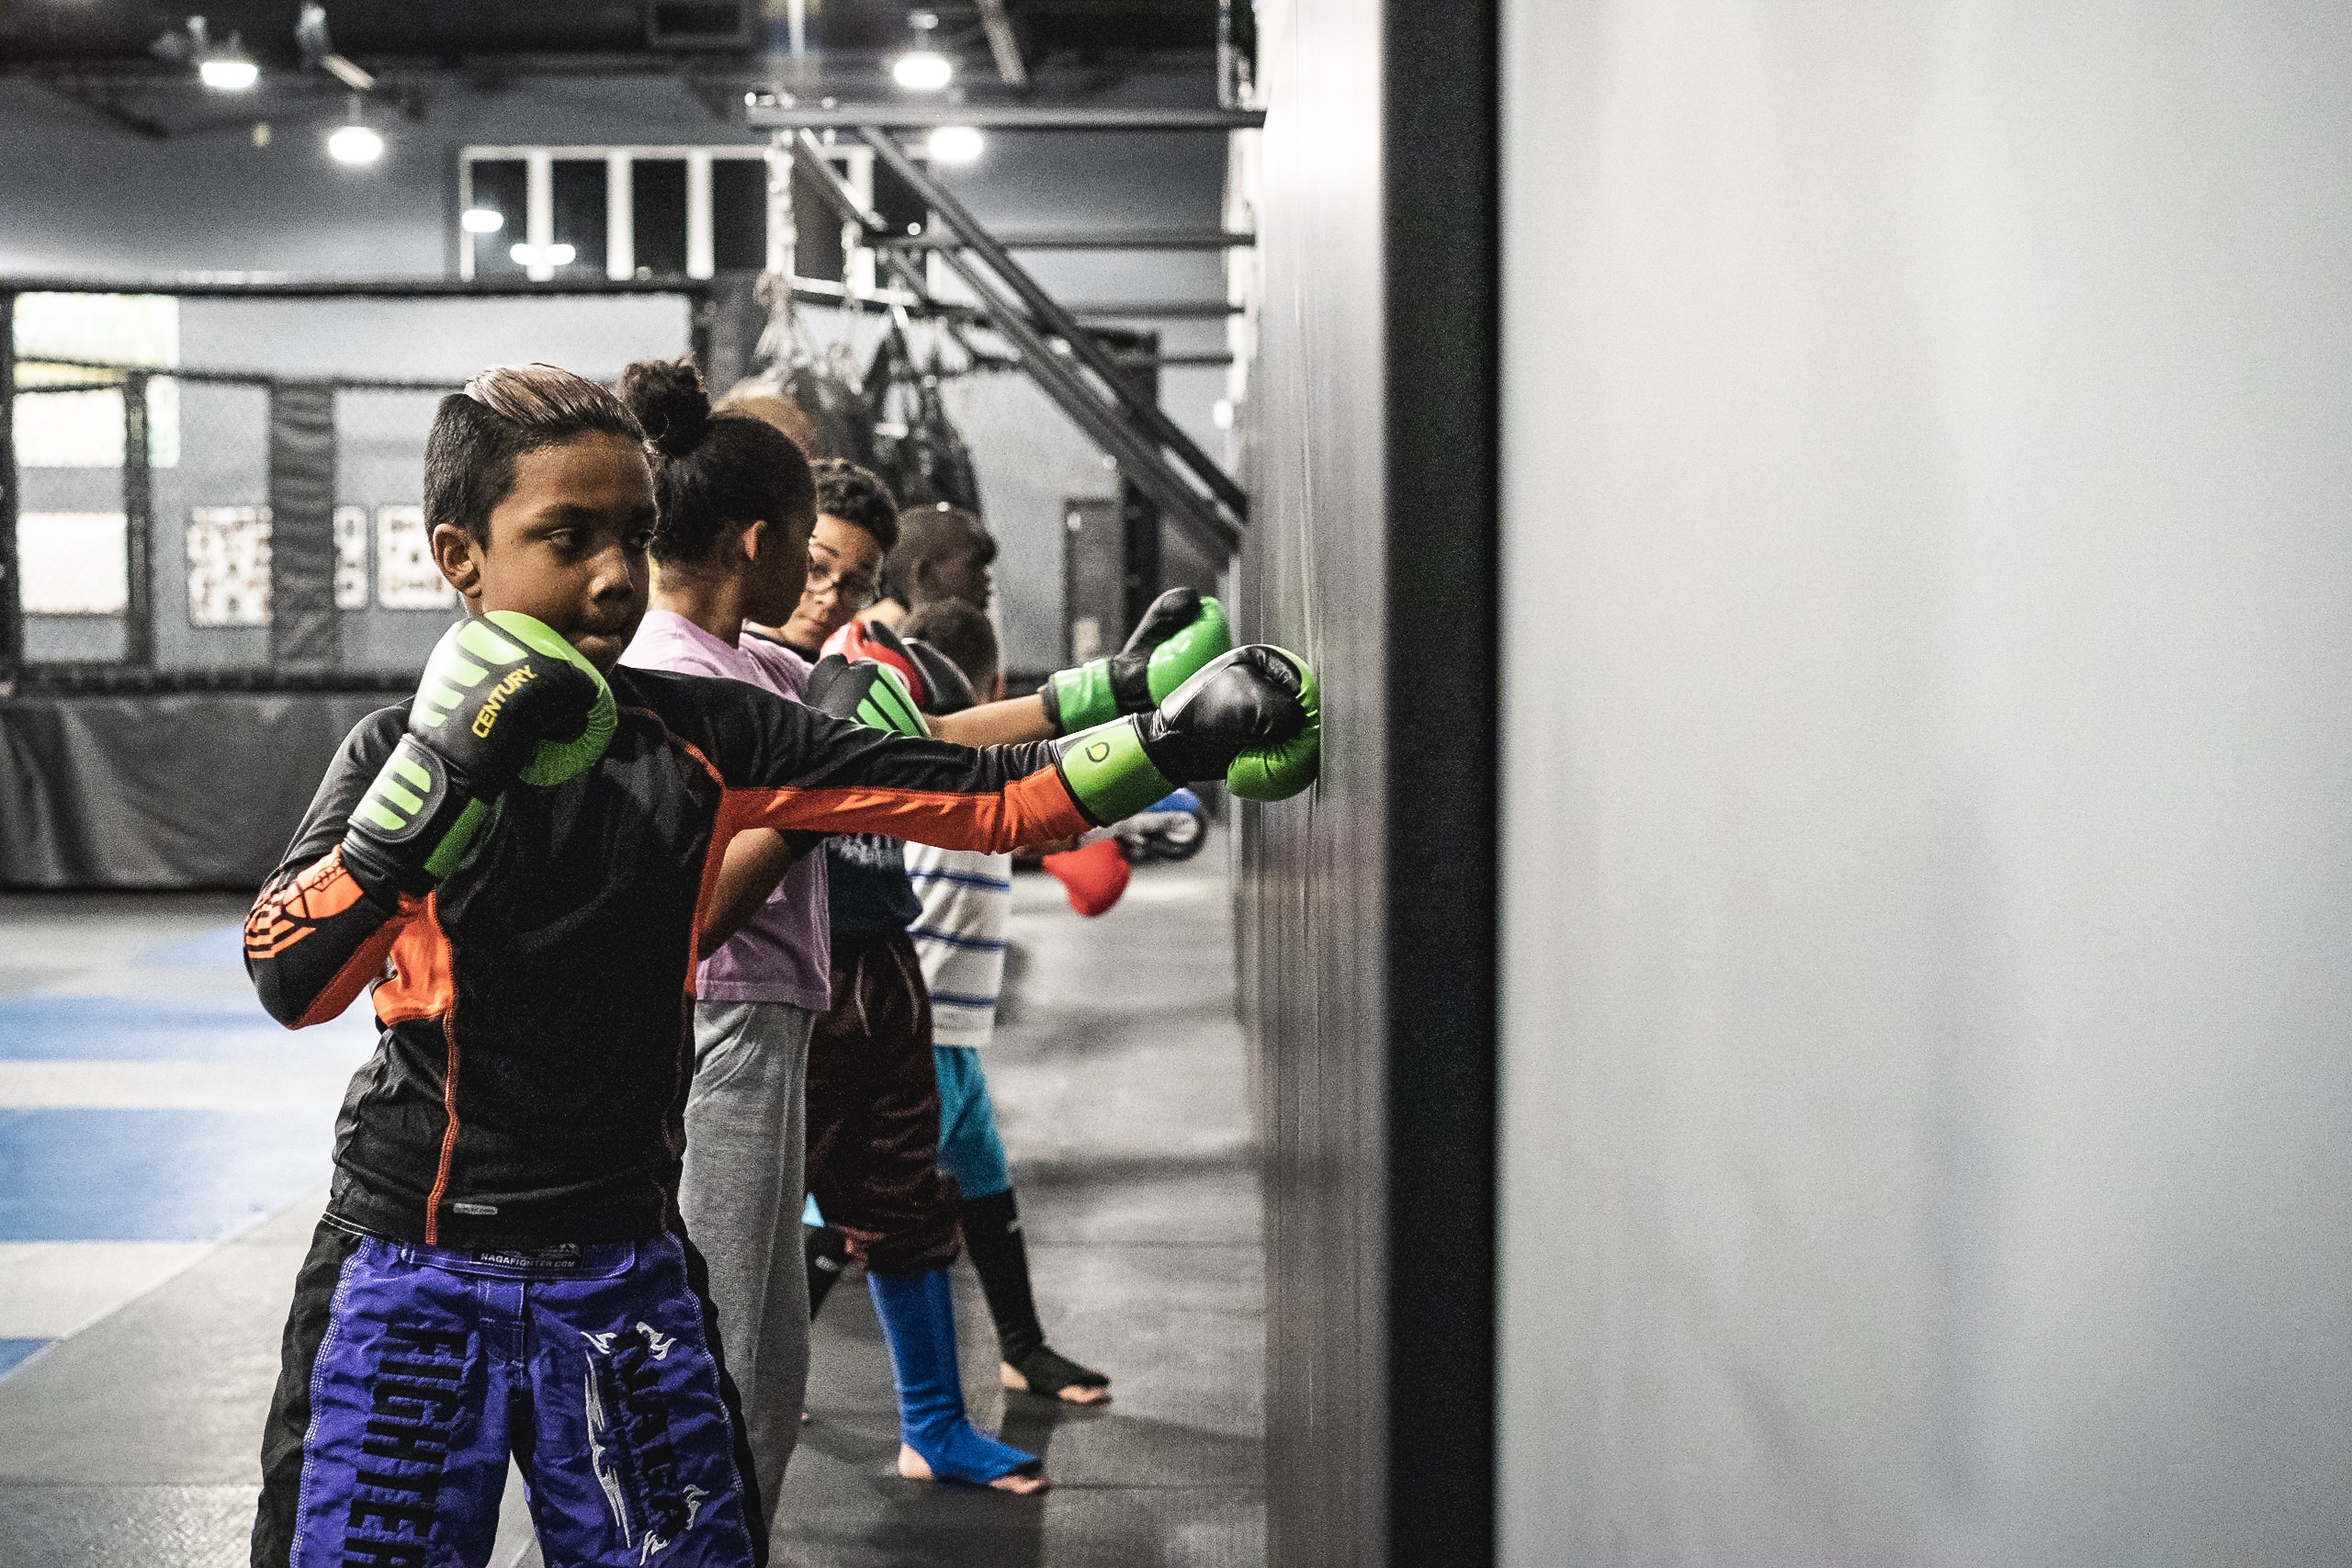 New Muay Thai Class for Juniors (Ages 5-7) on Tuesdays at 4:30pm